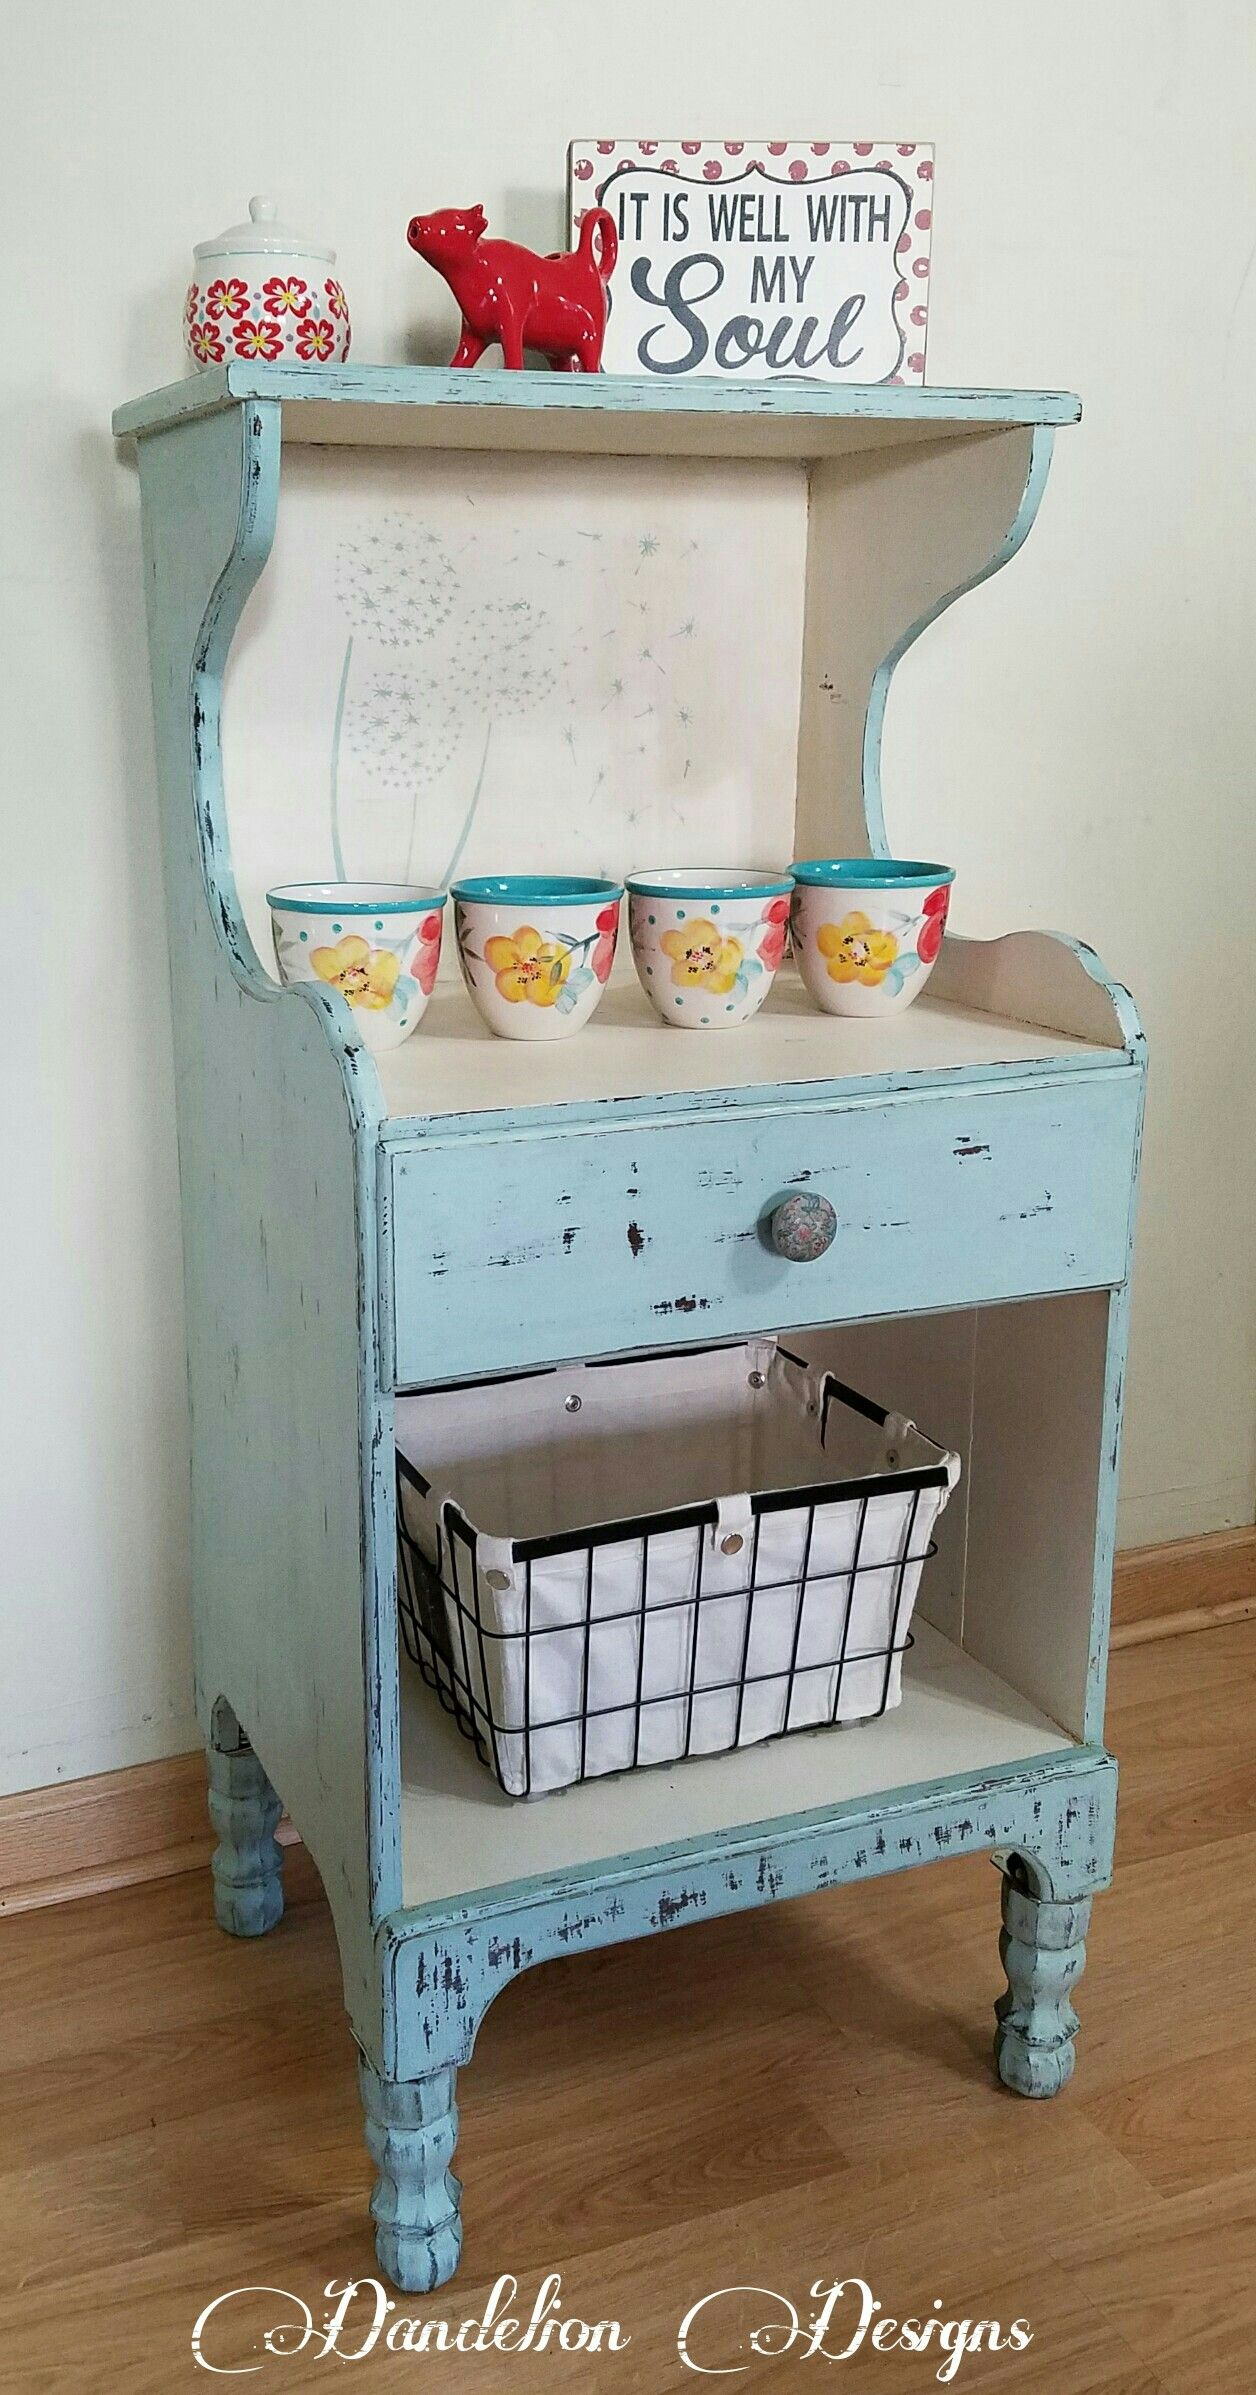 Vintage Handmade Cabinet Turned Into A Farmhouse Chic Coffee Bar